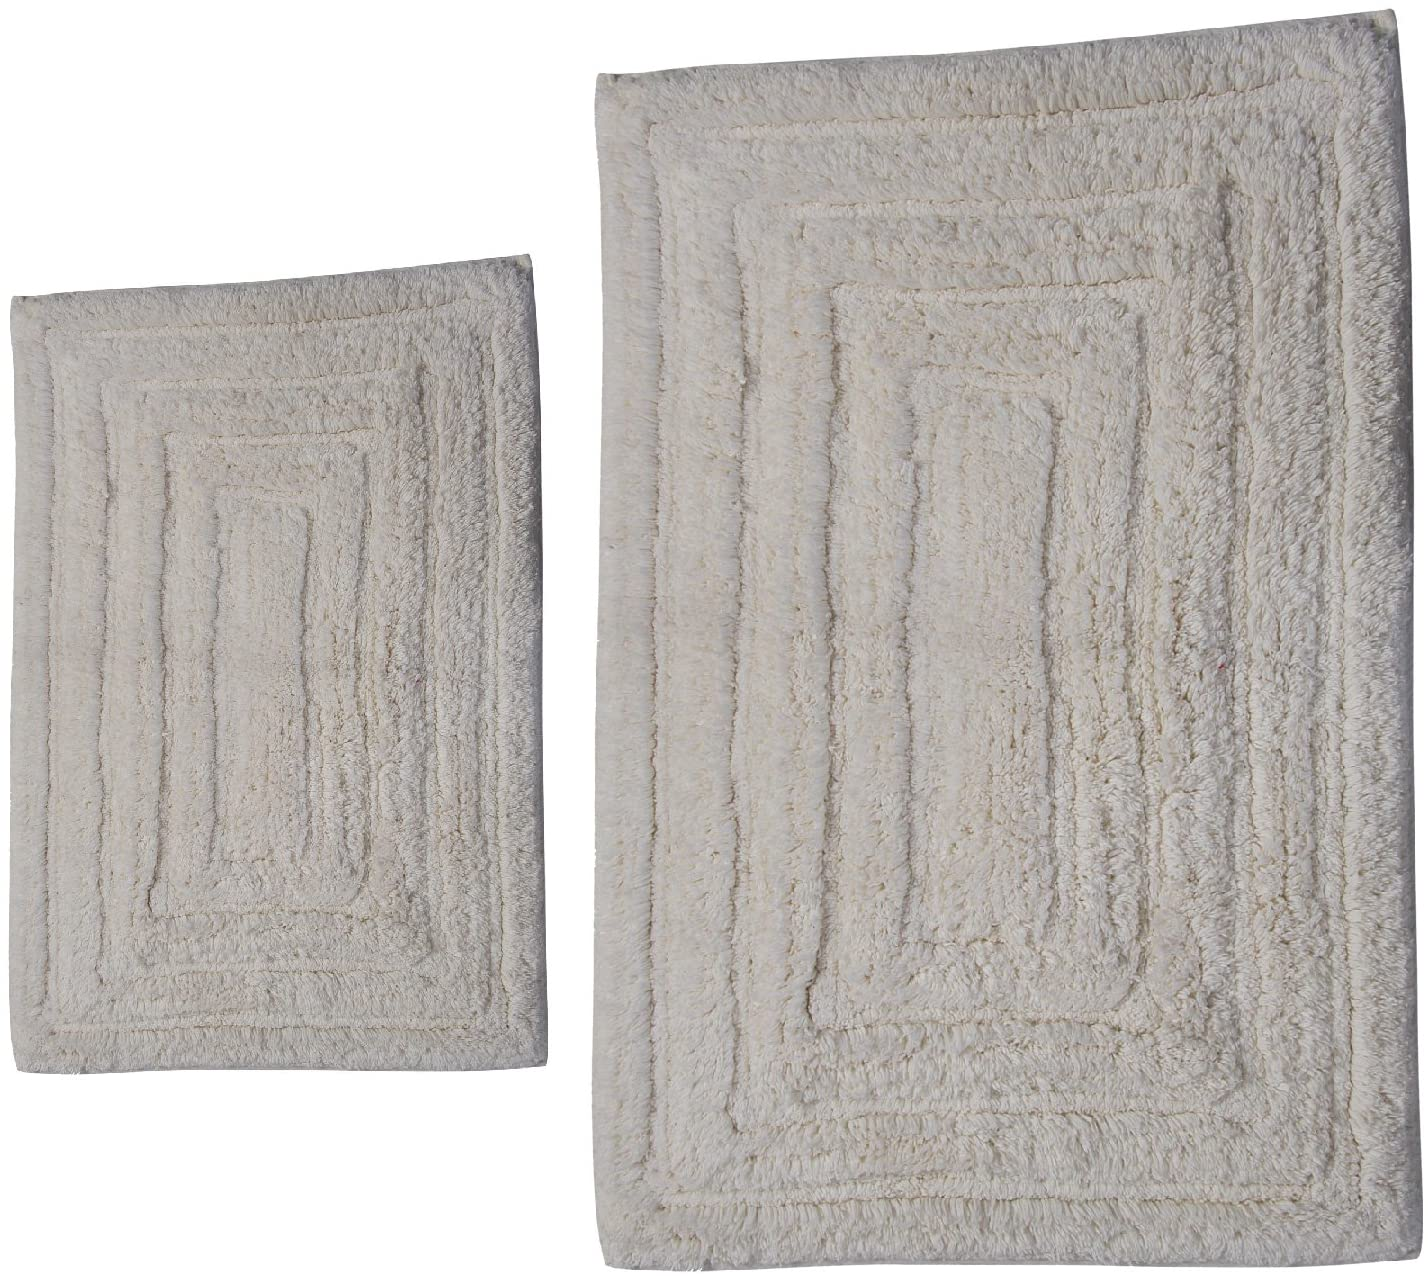 Castle Hill CH-BR-21X34&24X40-RTRAK-2PCS-IVR 2-Piece Bath Rug Sets, 21 by 34-Inch/24 by 40-Inch, Ivory